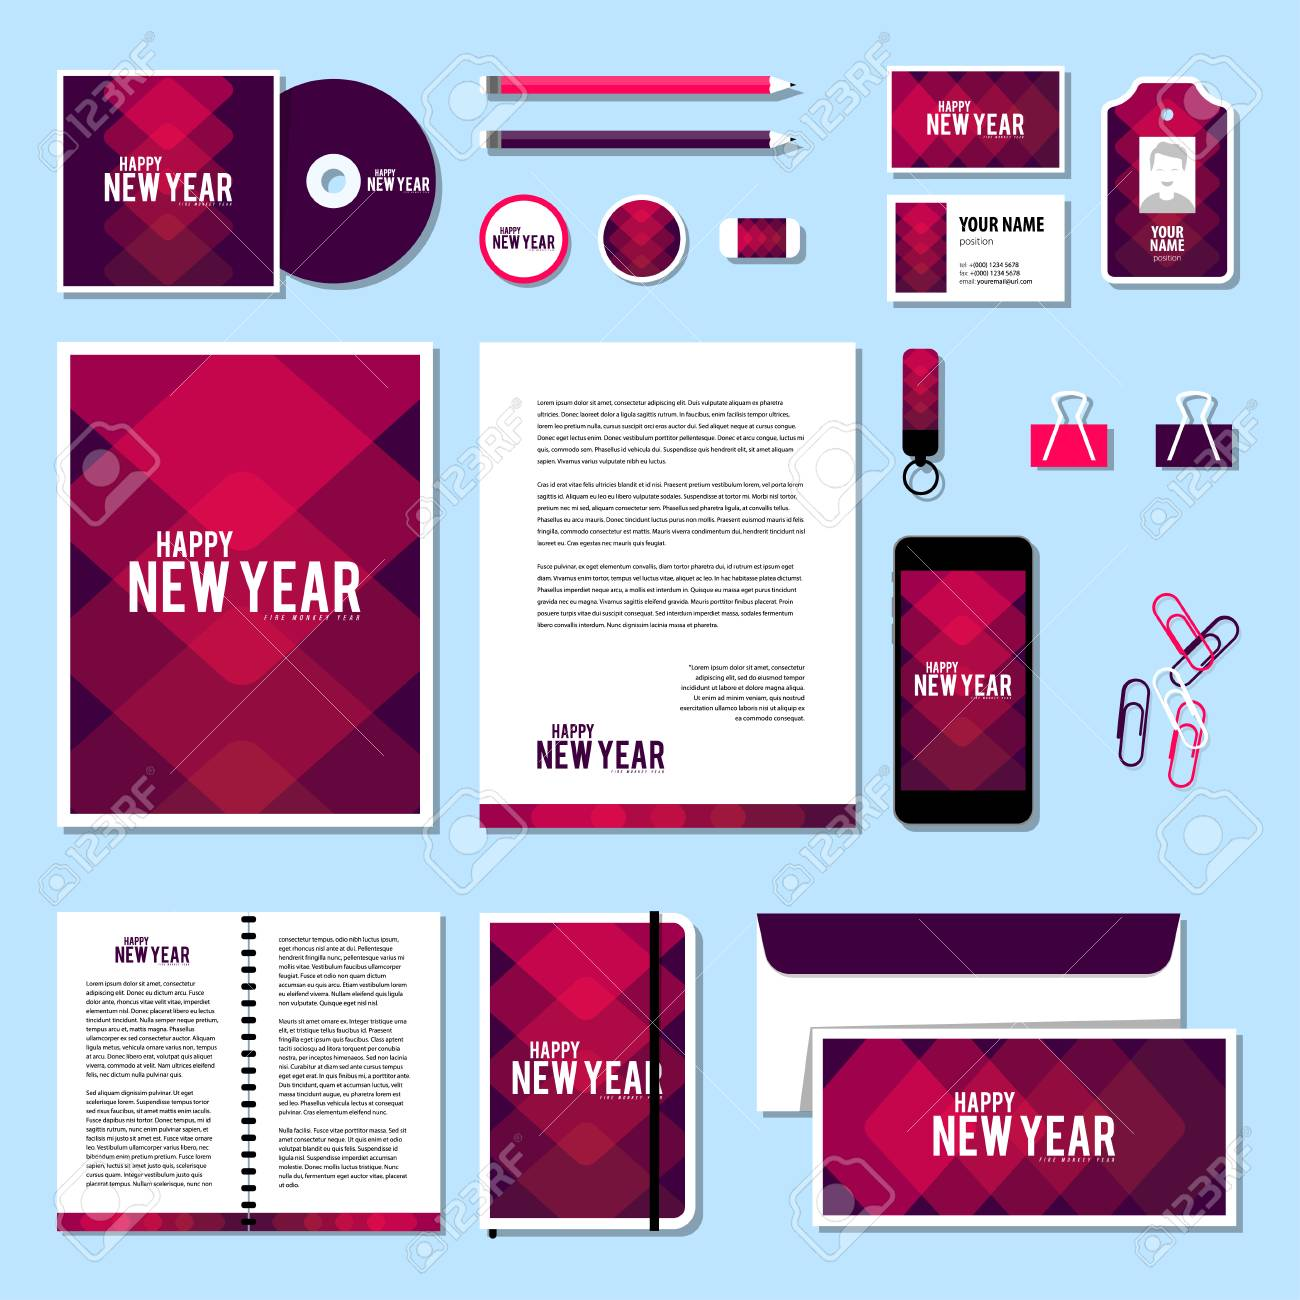 corporate identity business set design vector stationery template design with new year elements 2016